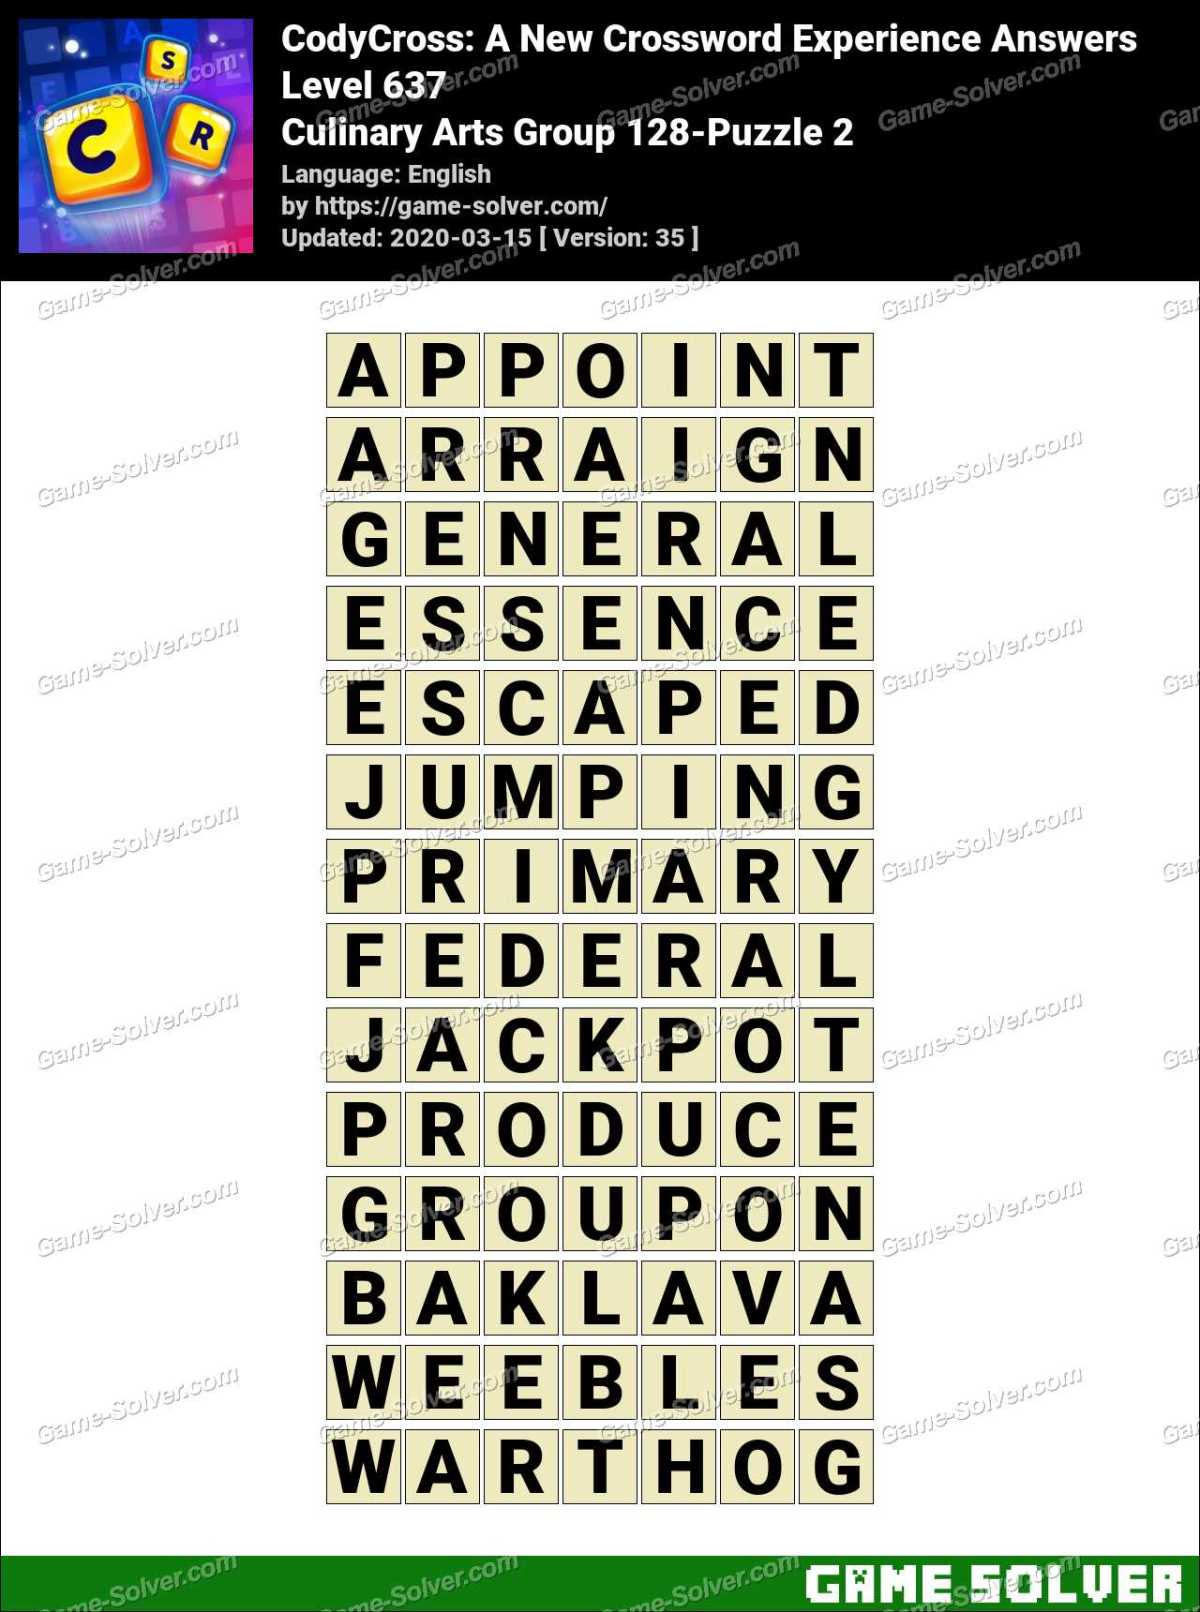 CodyCross Culinary Arts Group 128-Puzzle 2 Answers